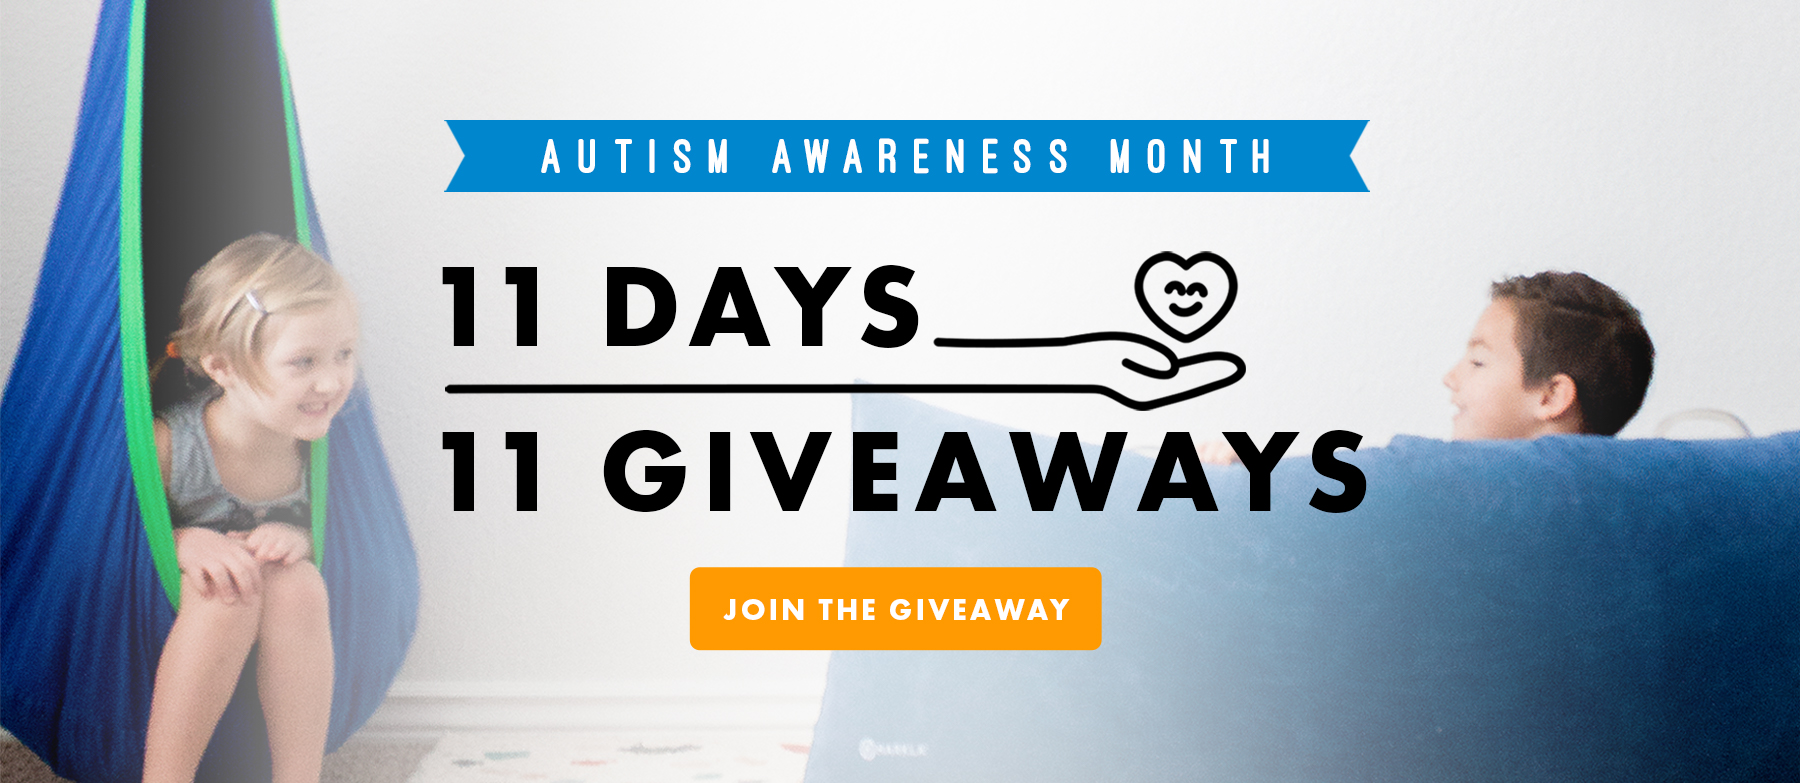 11 Days, 11 Giveaways for Autism Awareness Month Giveaway Image